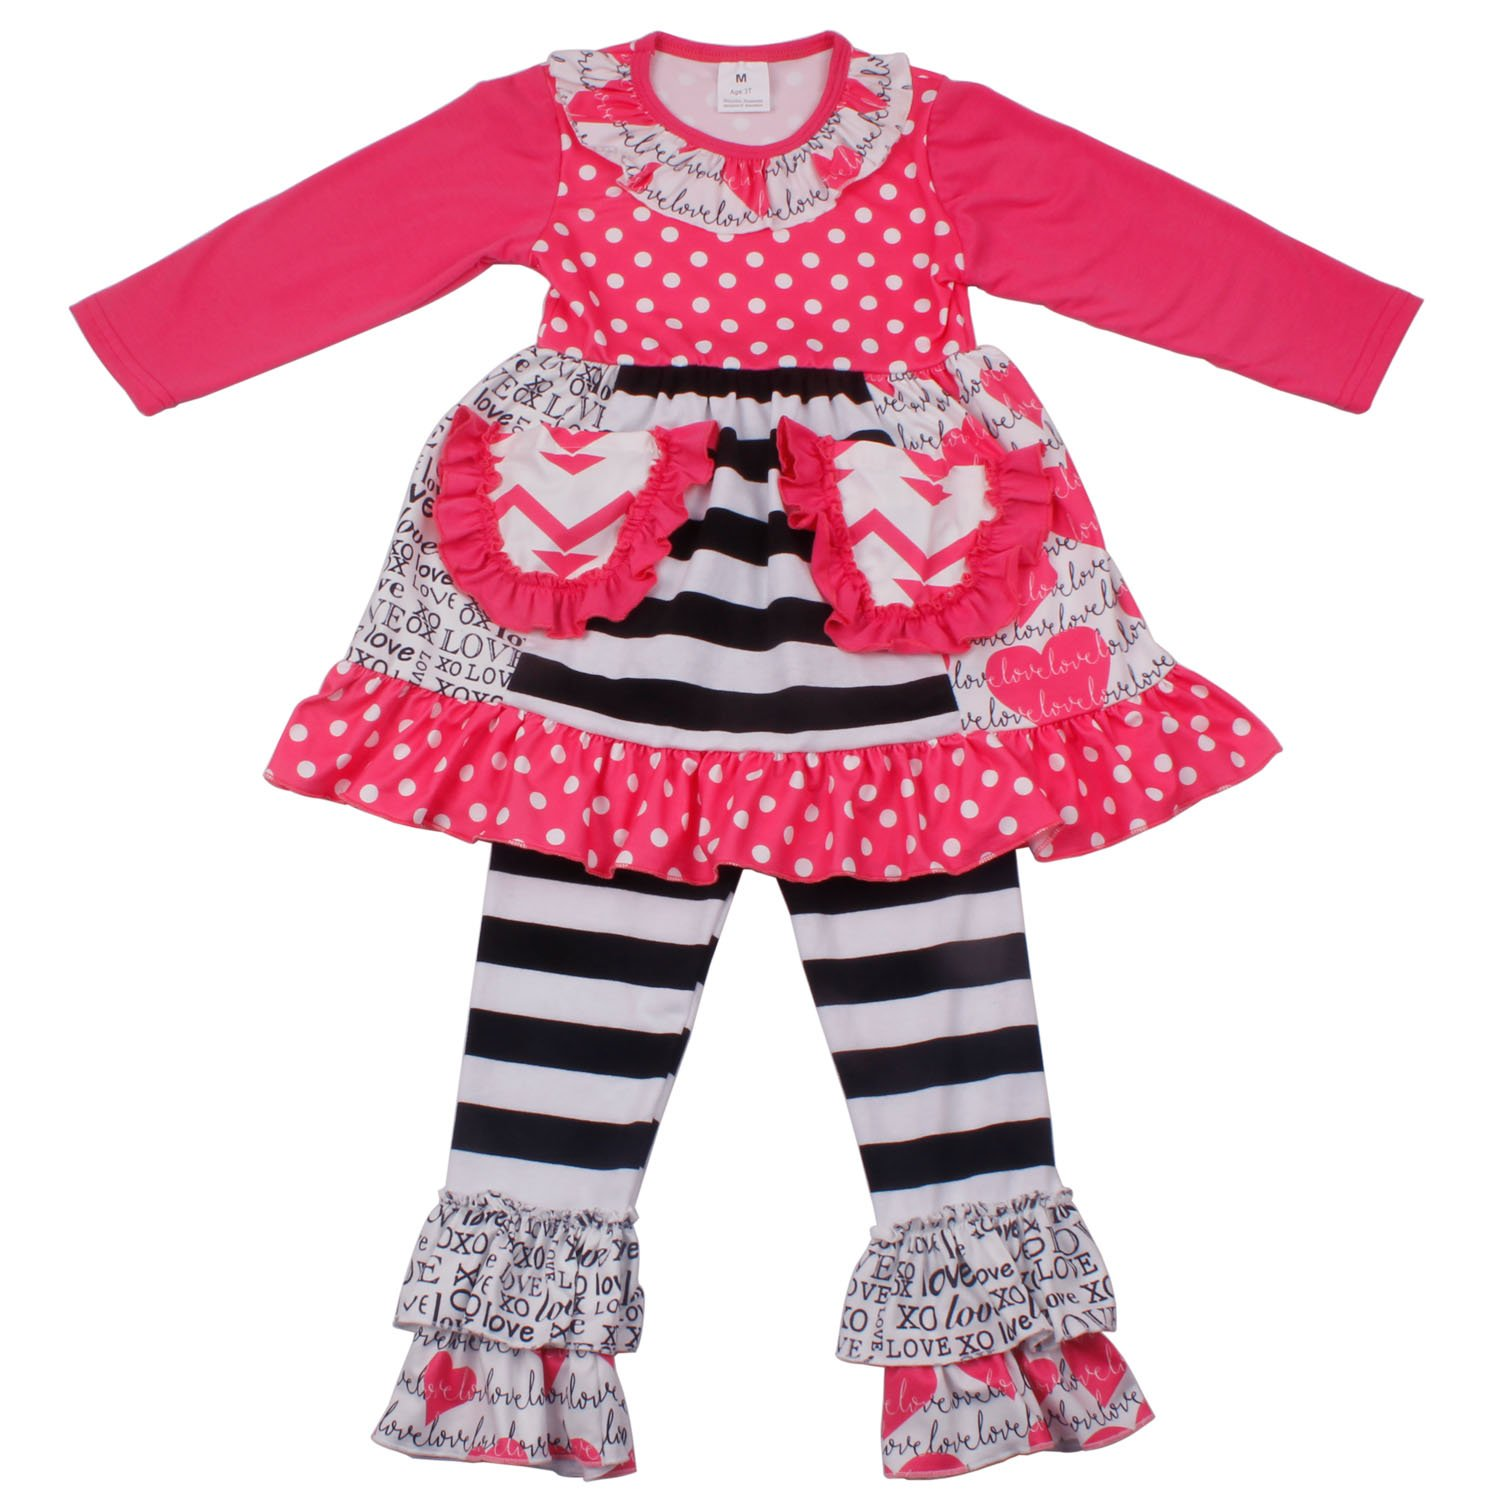 Yliyang Baby Girls Heart Printed Ruffle Dress Pants Clothes Set Toddler Little Girls Fall Winter Boutique Outfits 4T